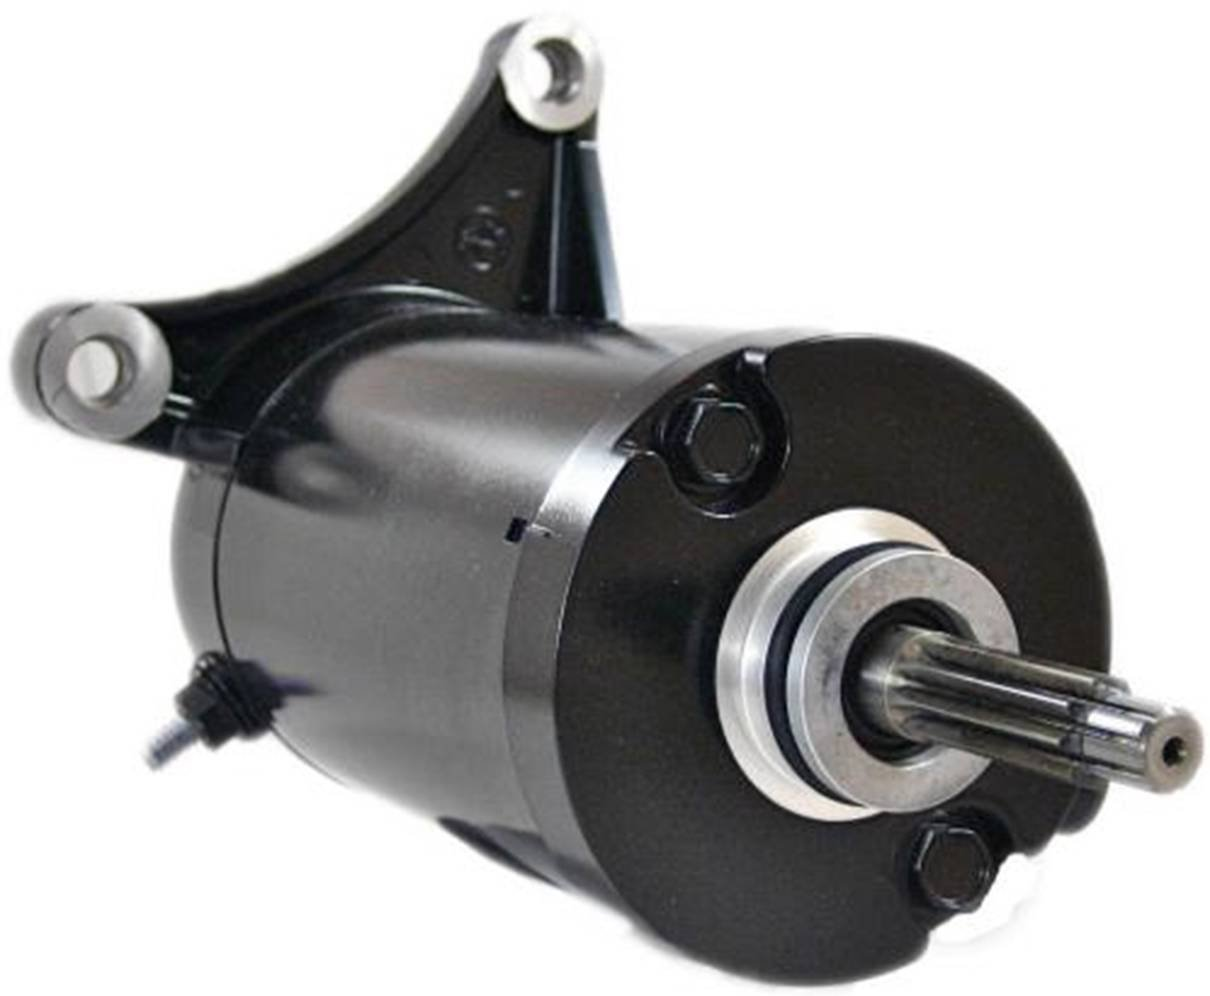 NEW STARTER FITS 2000-01 VICTORY MOTORCYCLE STANDARD/SPORT CRUISER 92CID 1507CC